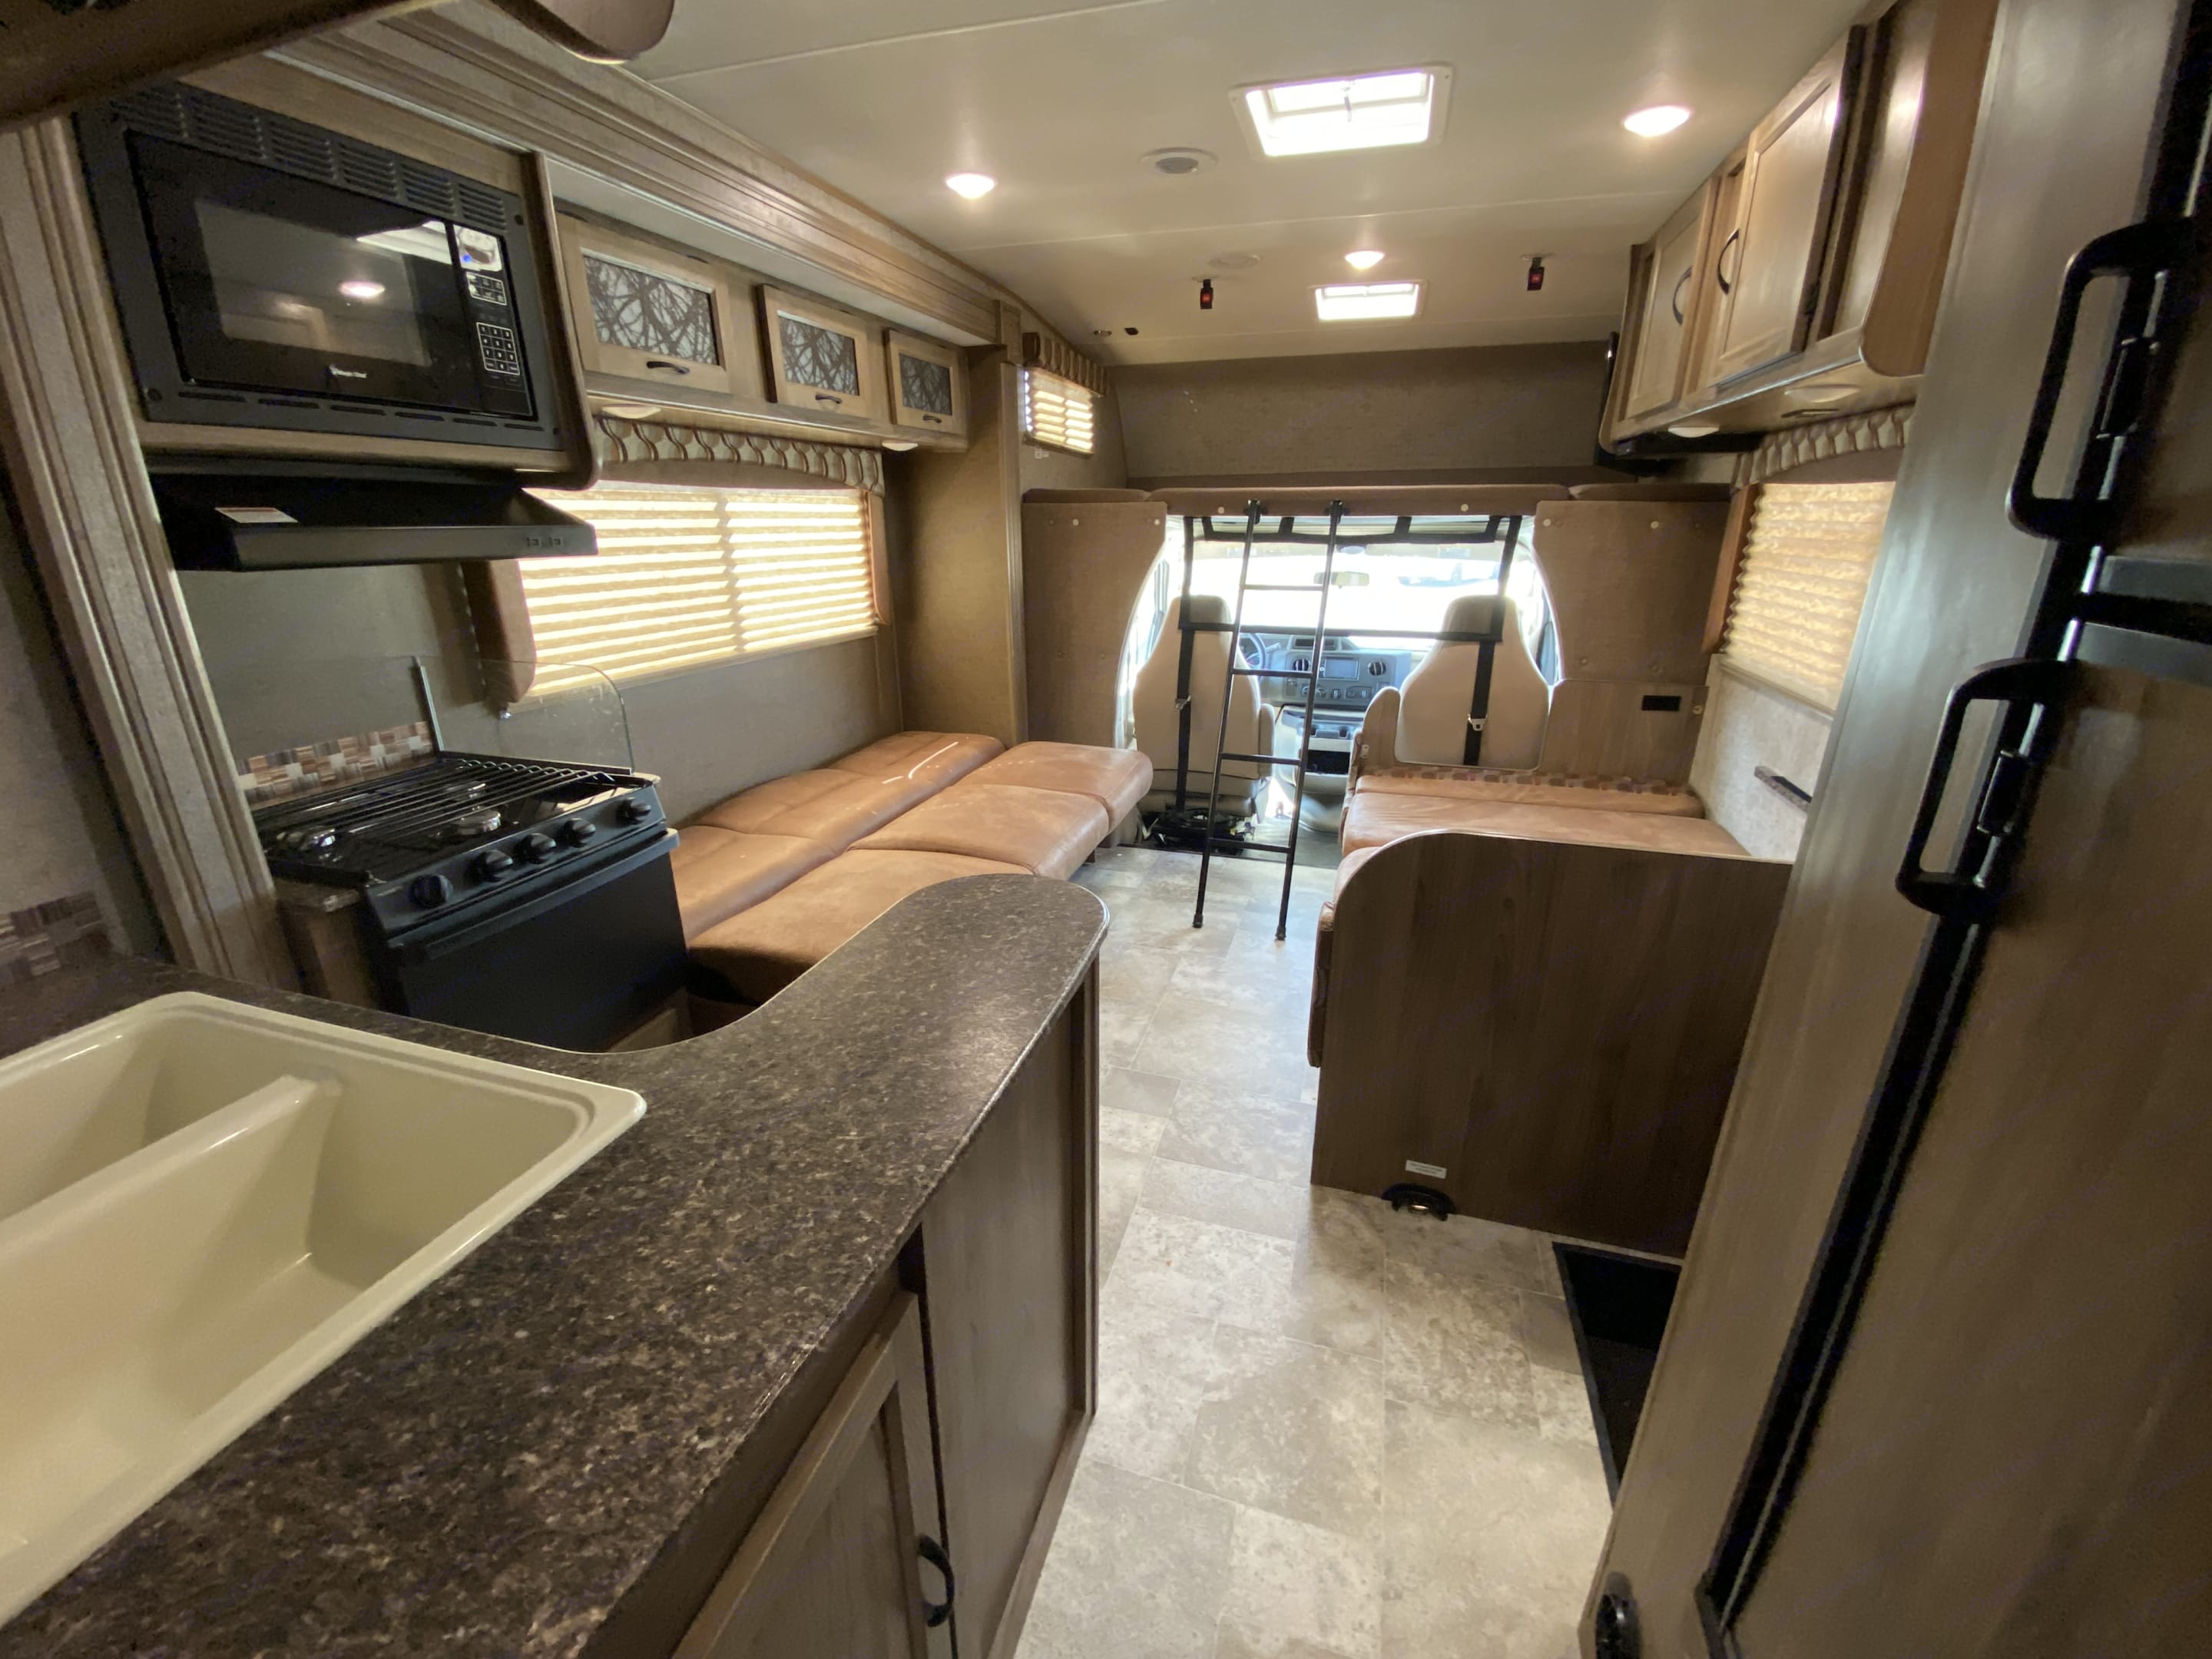 Overview of main cabin with beds folded down for sleep. Coachmen Freelander 2018